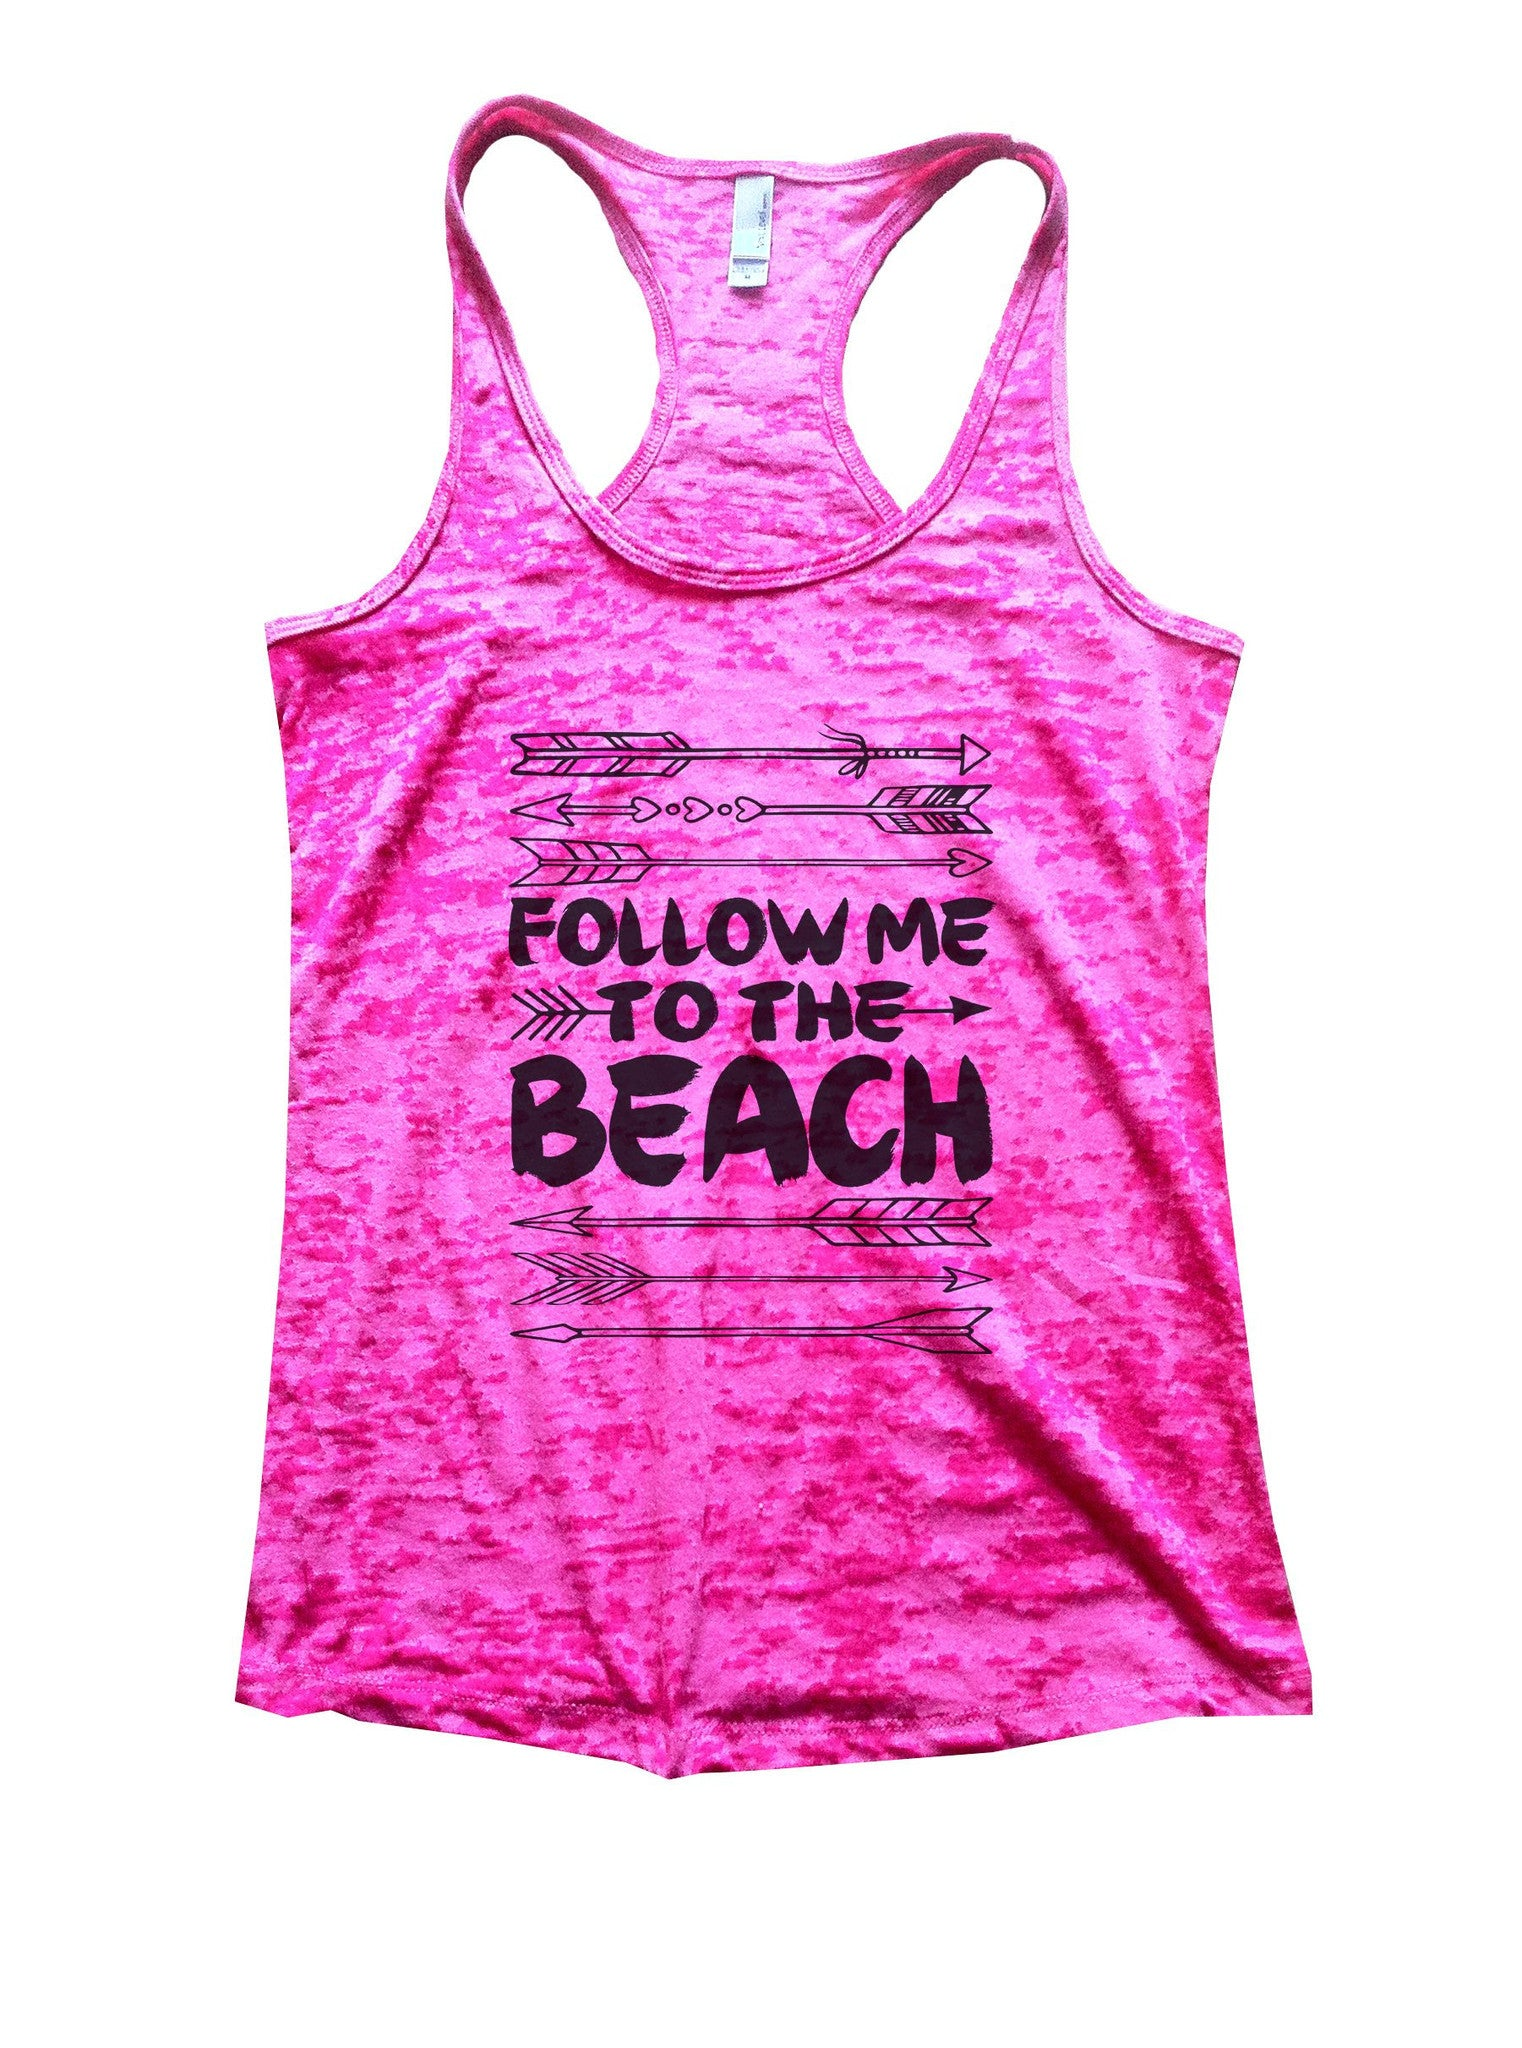 Follow Me To The Beach Burnout Tank Top By BurnoutTankTops.com - 931 - Funny Shirts Tank Tops Burnouts and Triblends  - 6